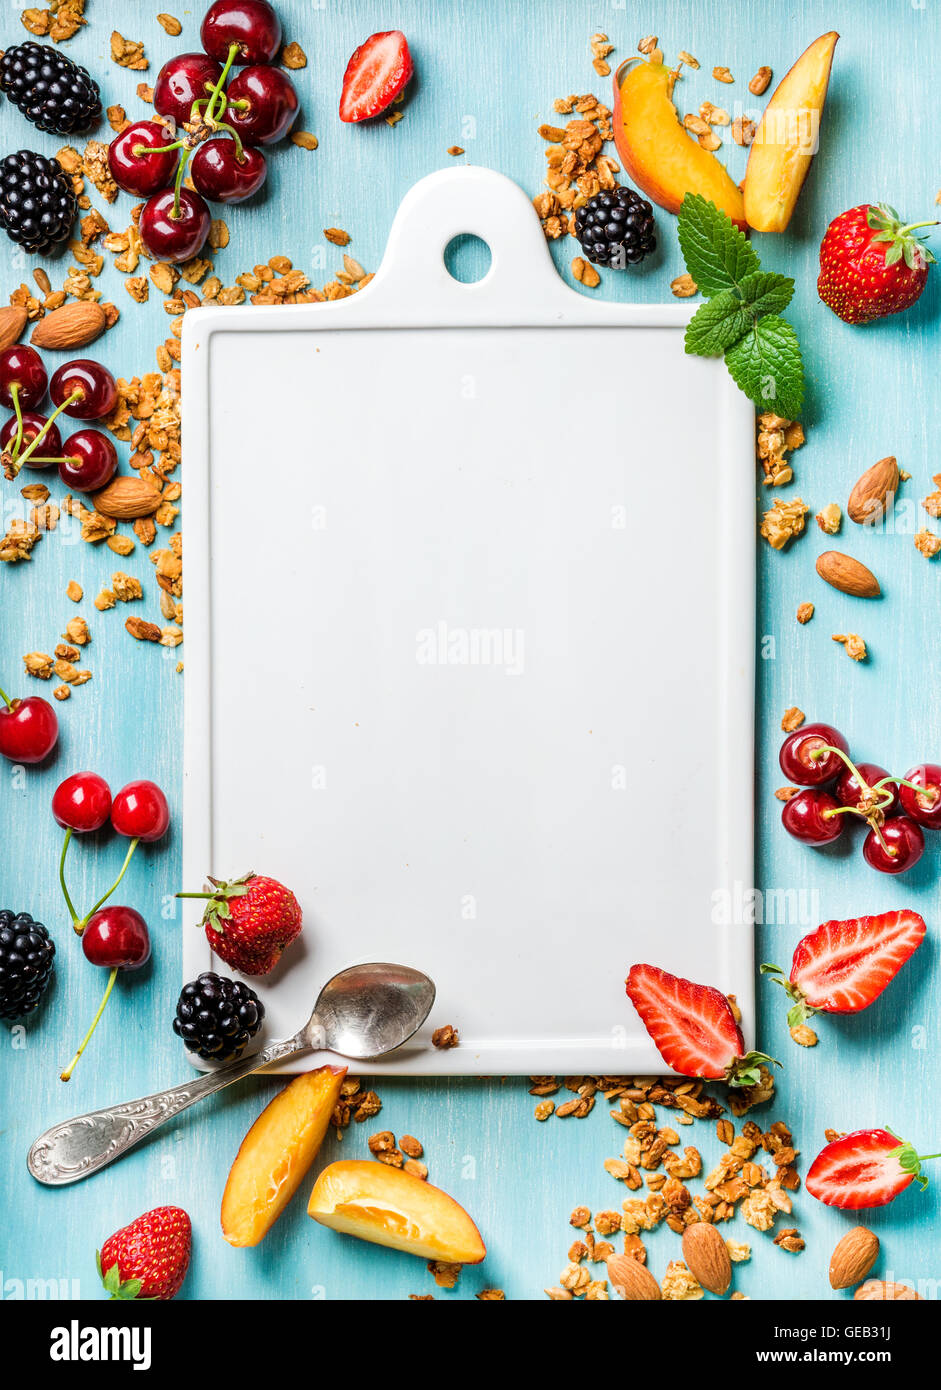 Healthy breakfast ingredients. Oat granola, fruit, berries and mint on blue background with white ceramic board - Stock Image